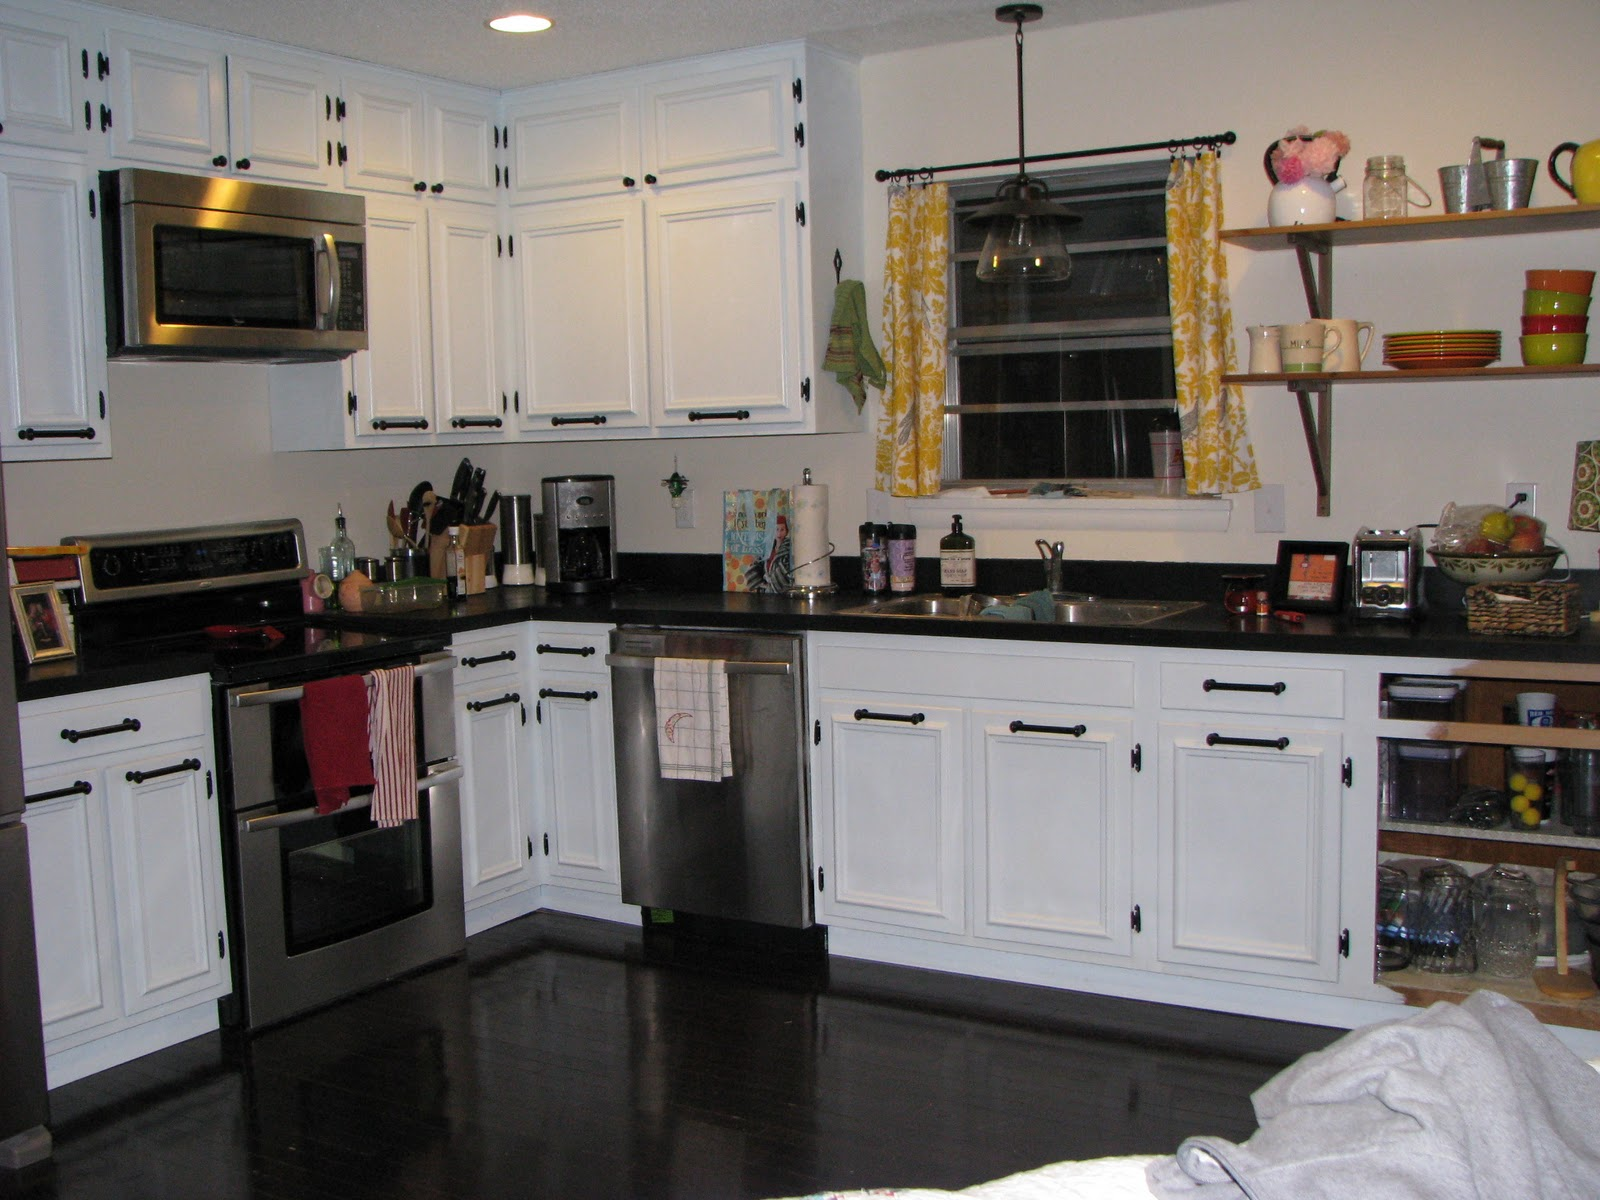 Kitchen Reveal - The Kitchen Renovation is complete!